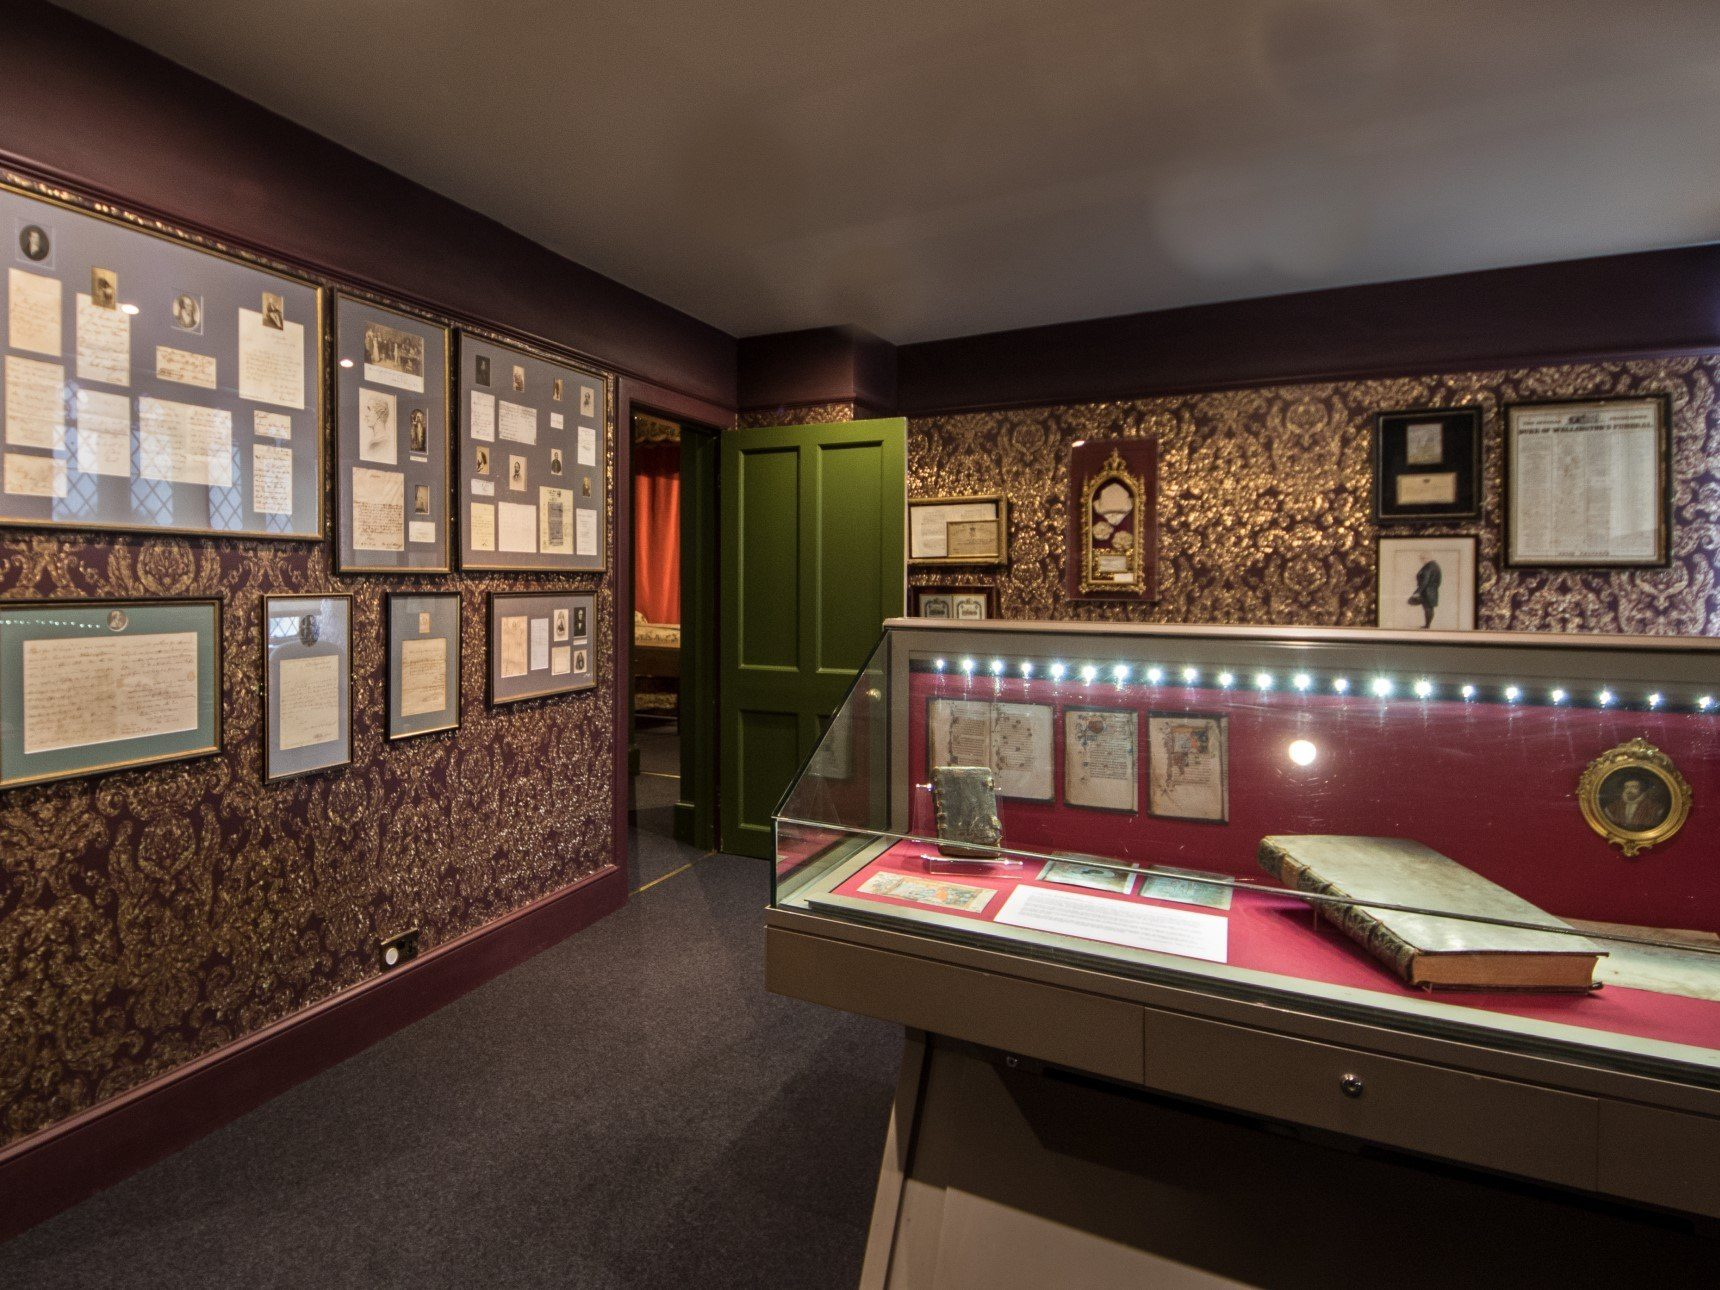 Document room containing autograph collection